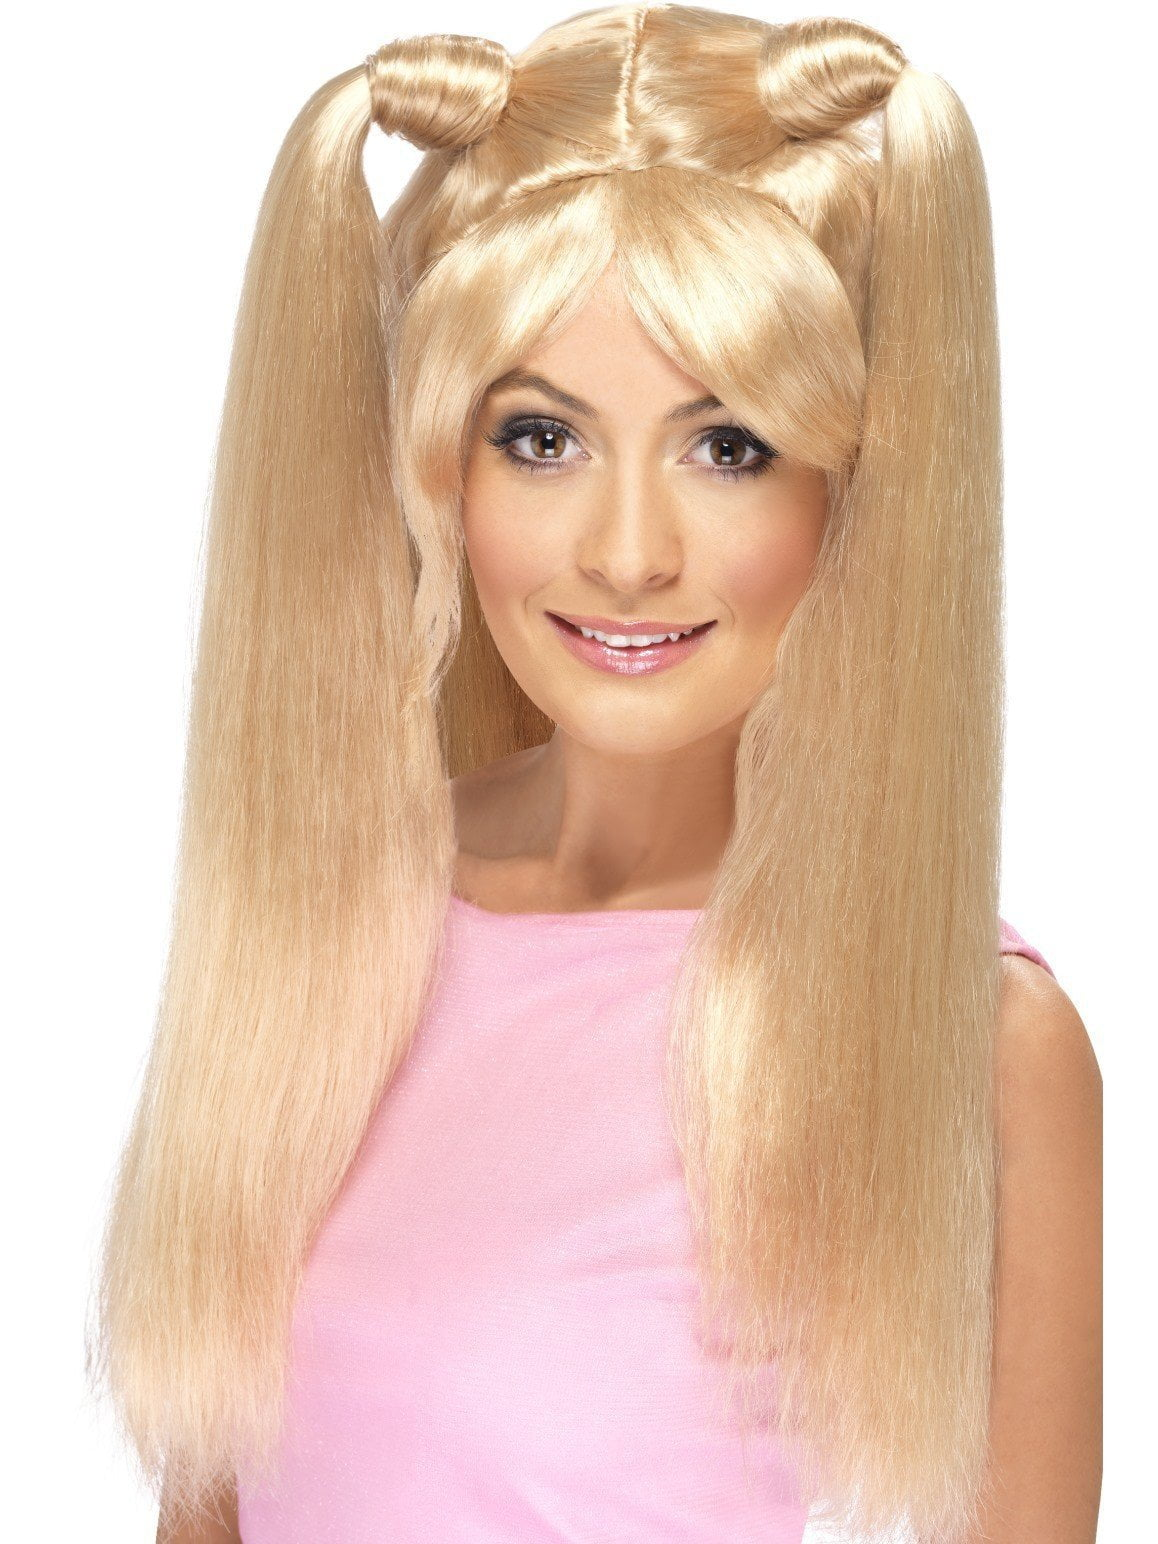 Baby Spice Girl Power Costume Wig Womens 90s Costume Accessory ffb758c7c